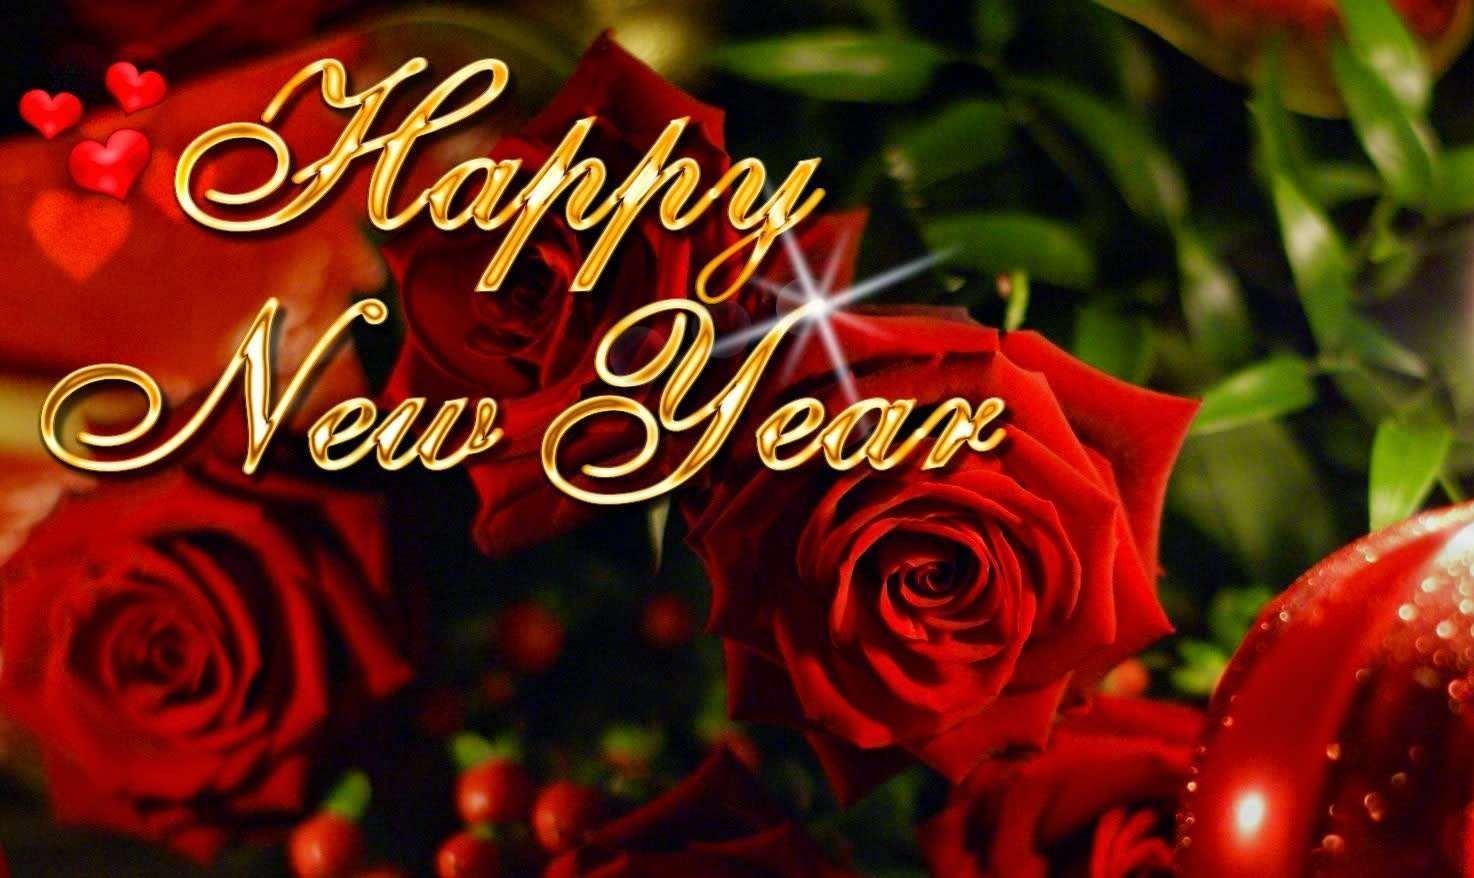 Top 18+ Happy New Year 2017 Wallpapers, Happy New Year Wallpapers